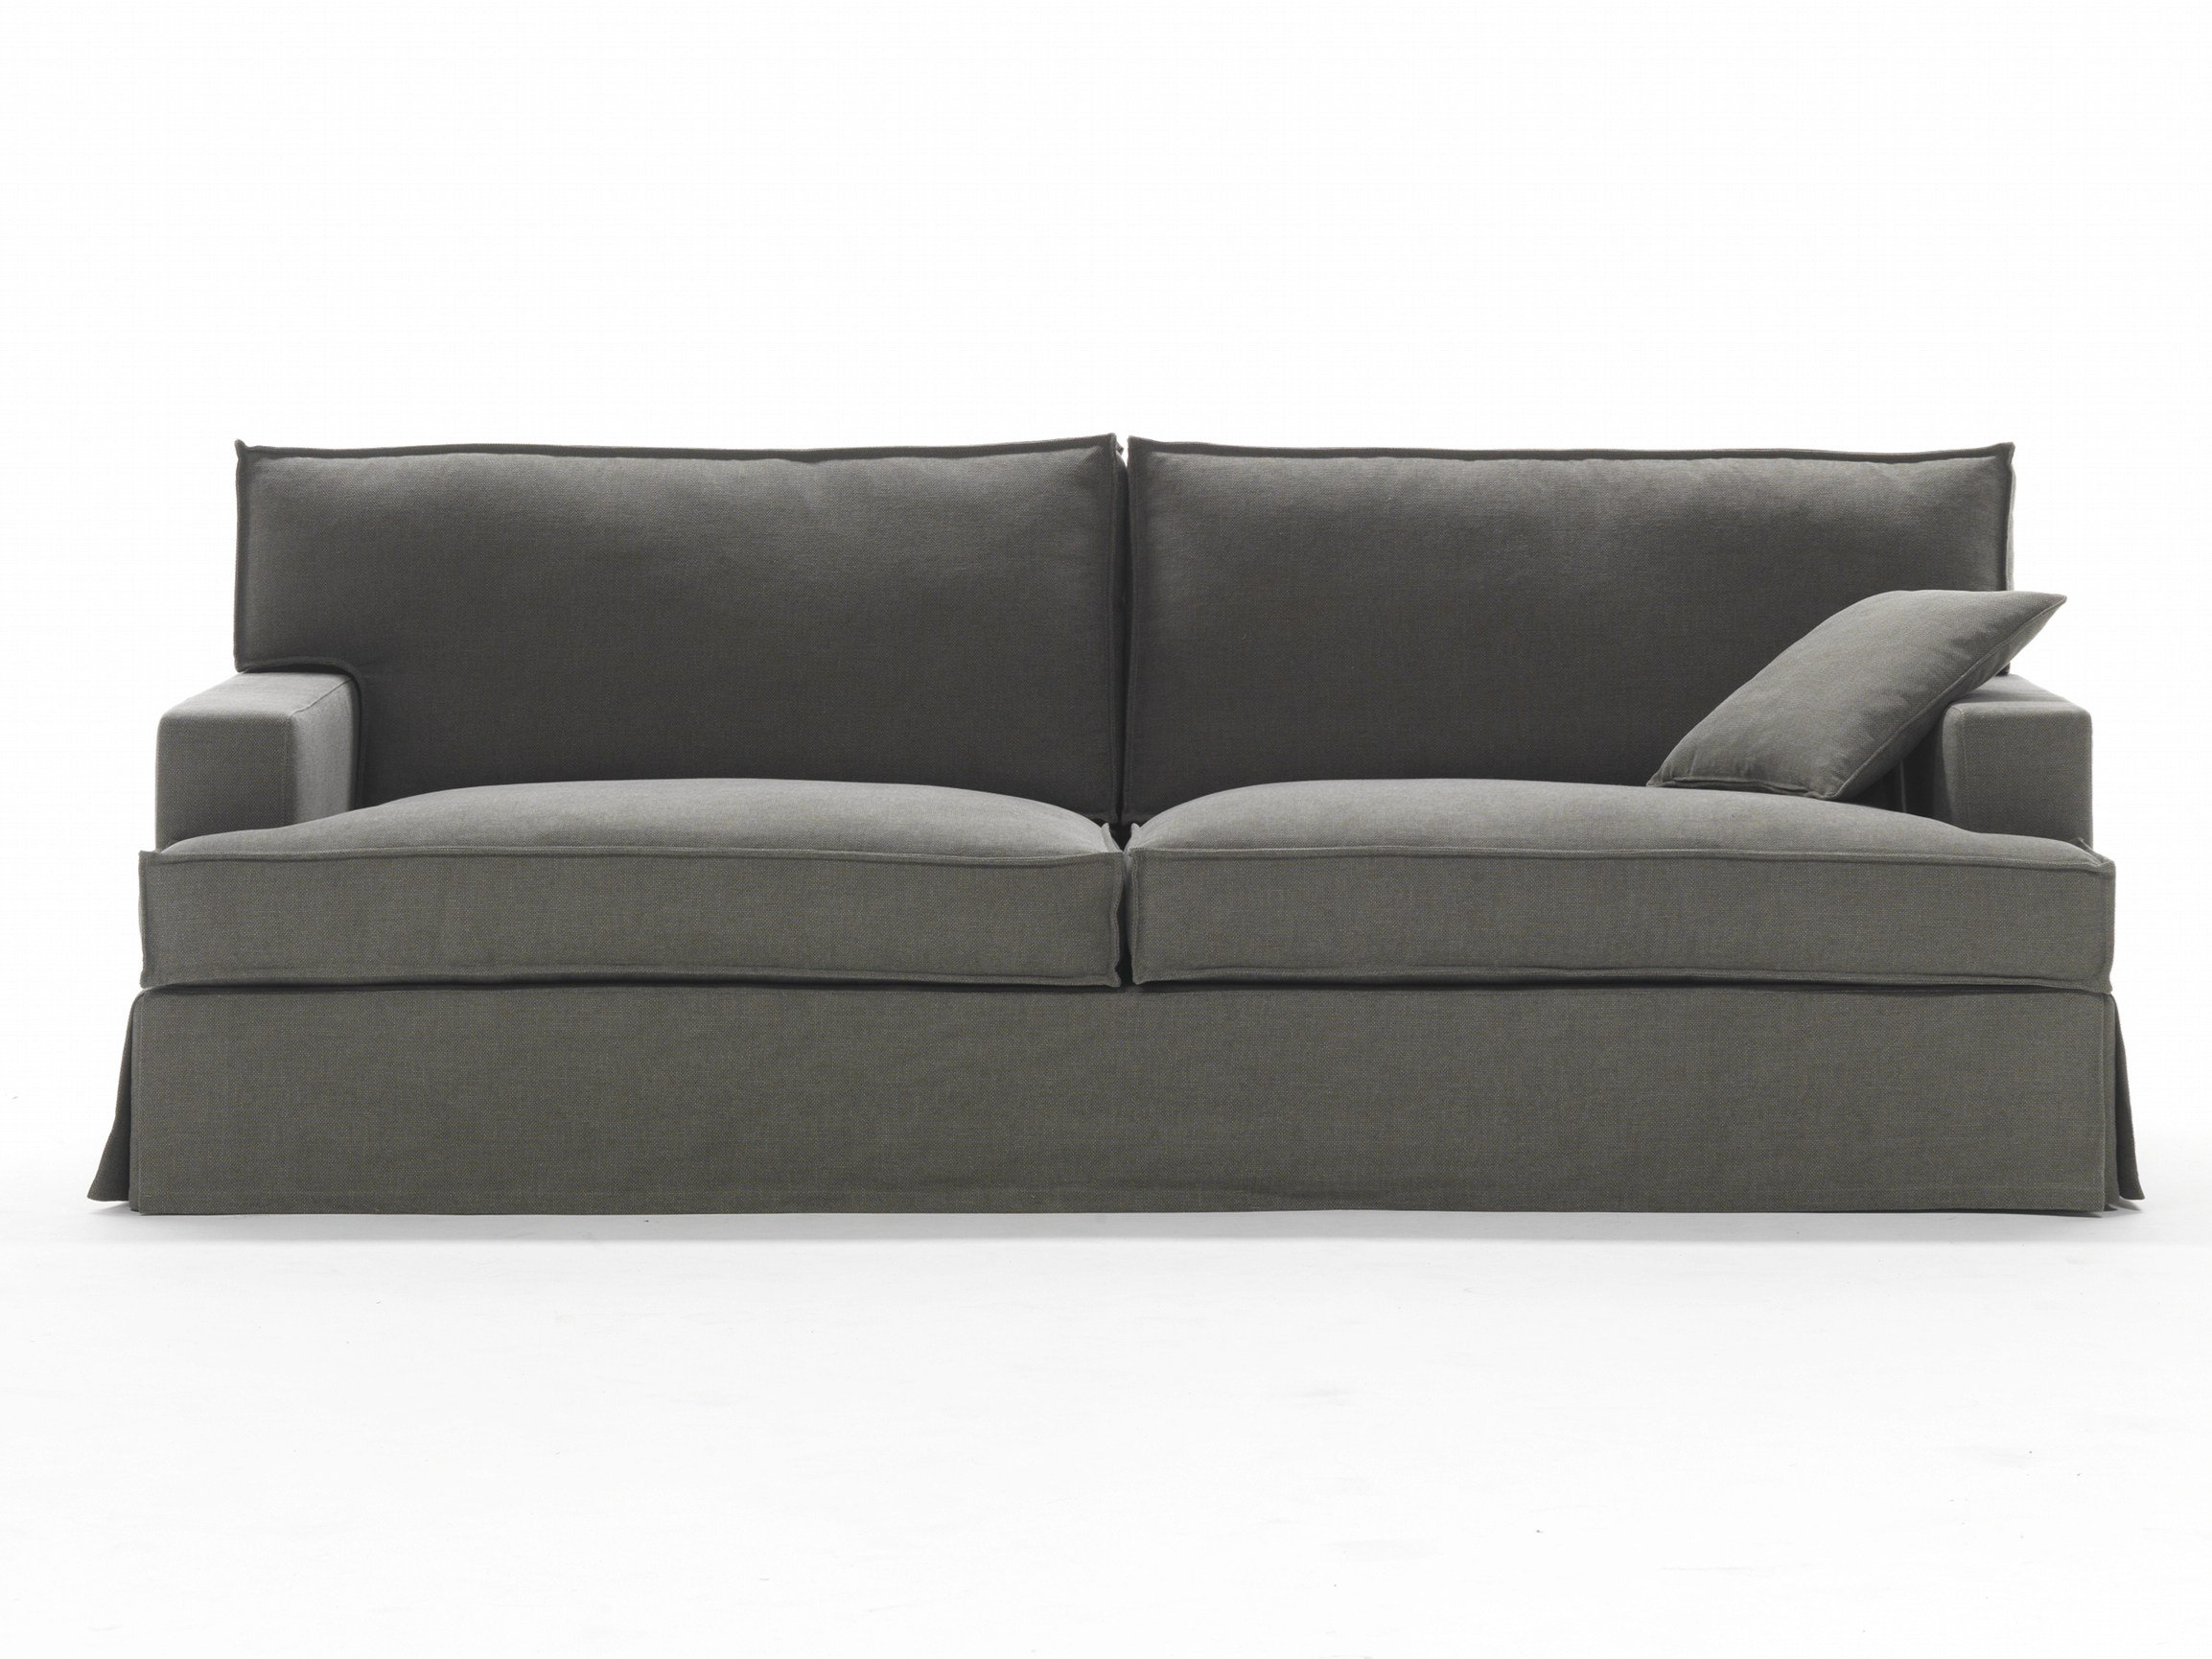 sectional sofa with removable covers   3 seater fabric sofa with removable cover GRACE by Giulio ...